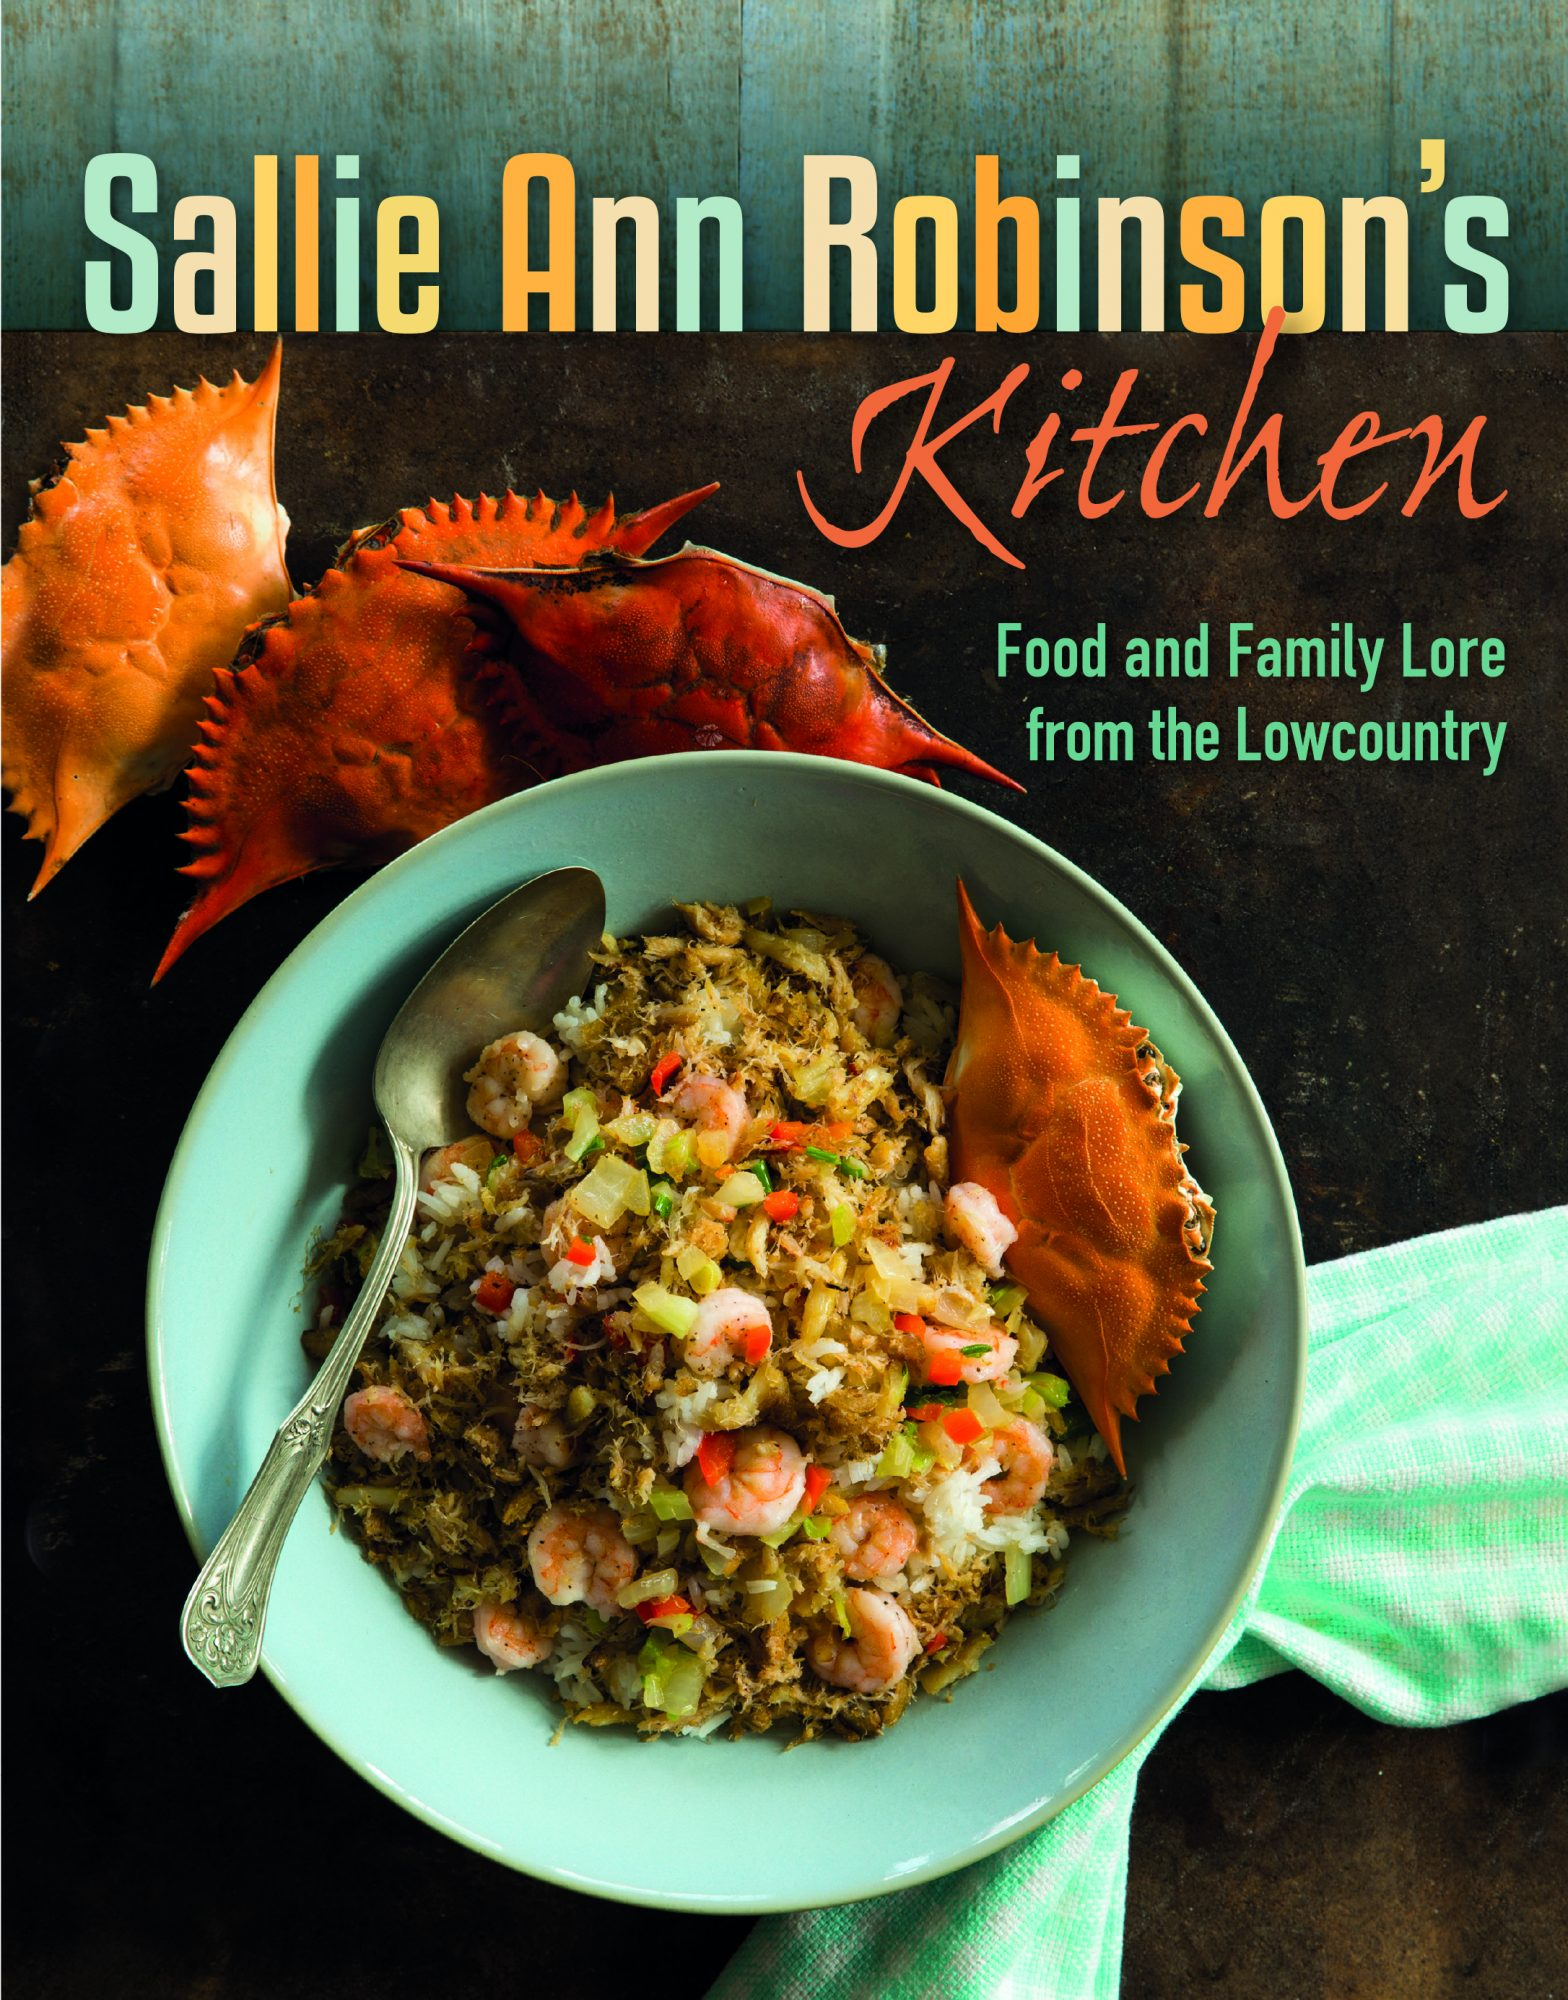 Sallie Ann Robinson: Food and Family Lore from the Lowcountry